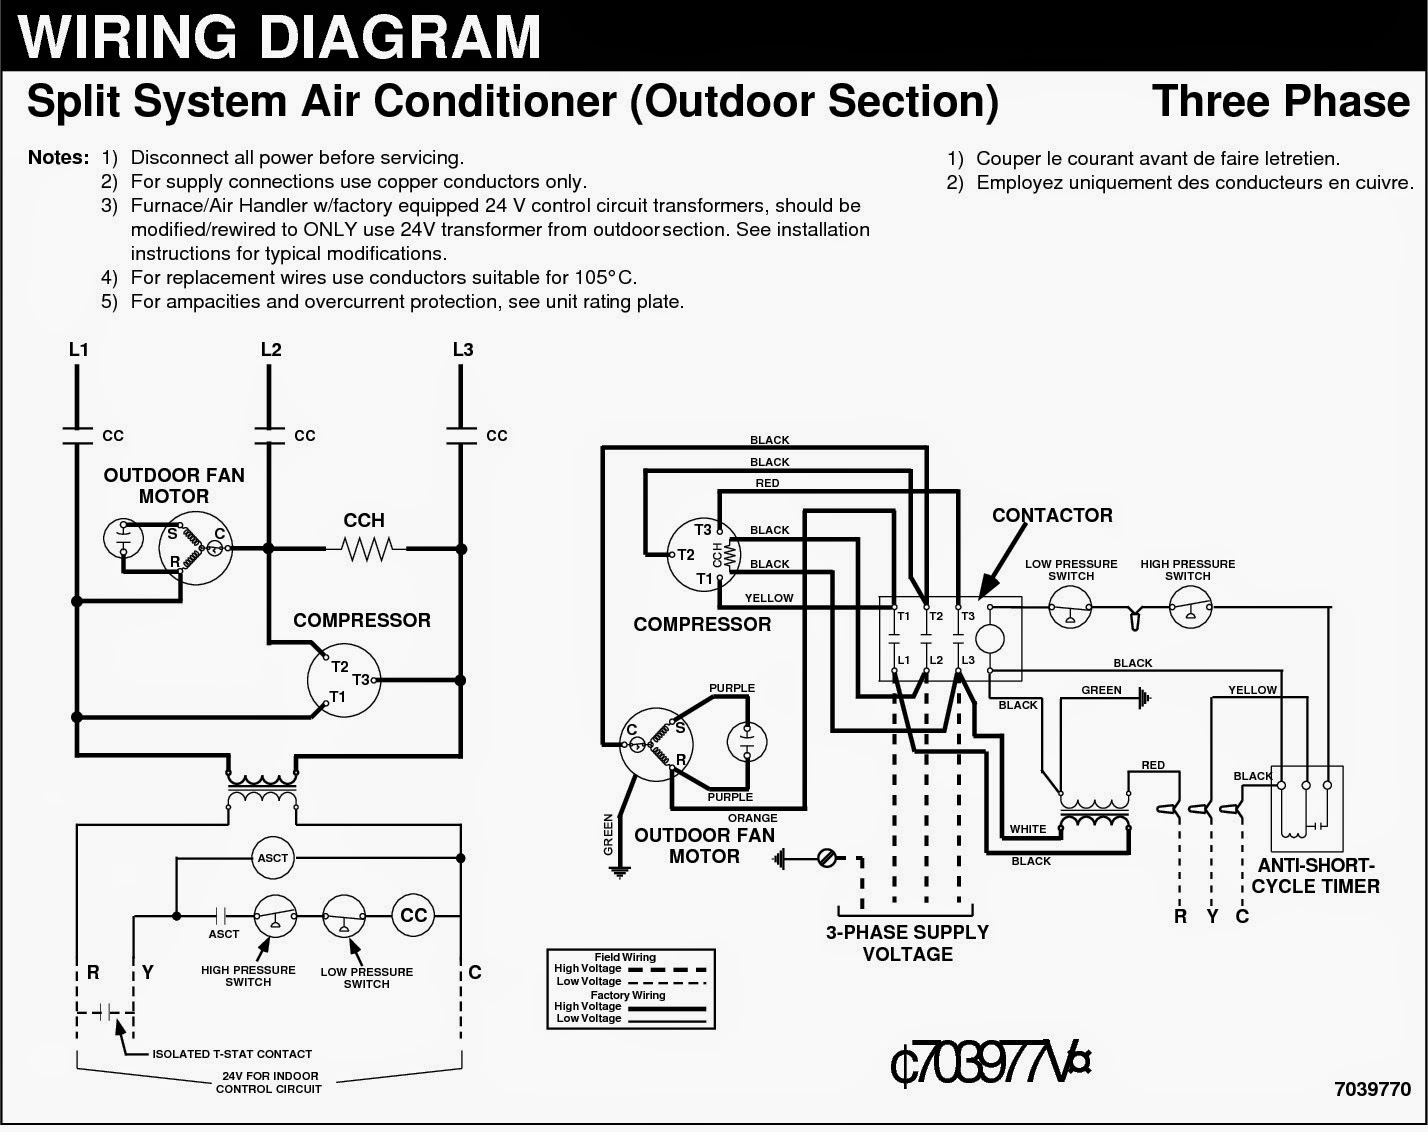 Idiy blogspot in addition Rheostat Wiring Diagram Of Motor Control likewise Water Pump 220 Volt Wiring Diagram additionally 220v Ac Ultra Bright Leds L  Circuit likewise Single Pole Light Switch Wiring Diagram. on 3 phase plug wiring diagram